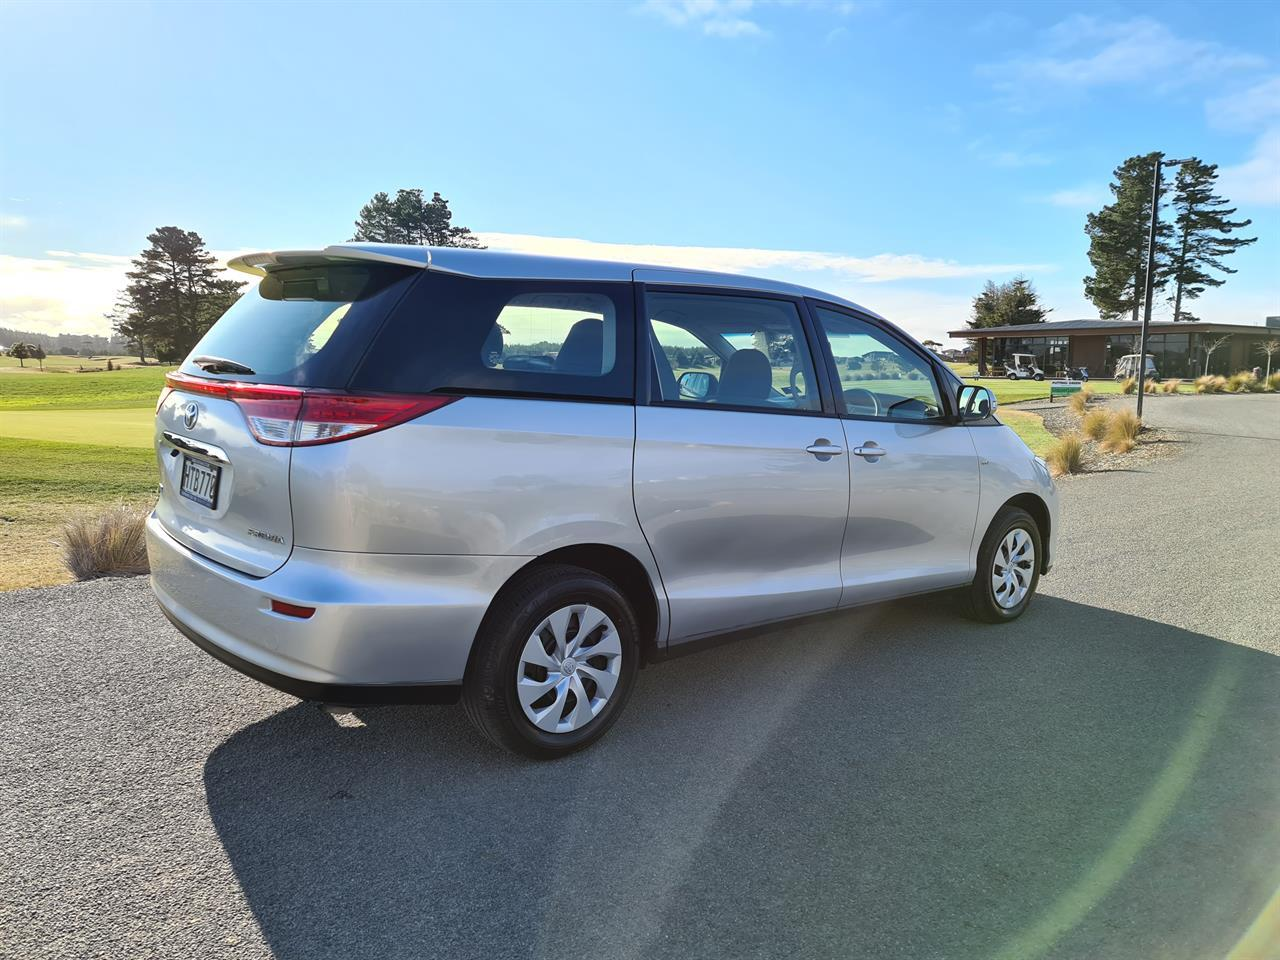 image-5, 2014 Toyota Previa 2.4P NPV CVT at Christchurch